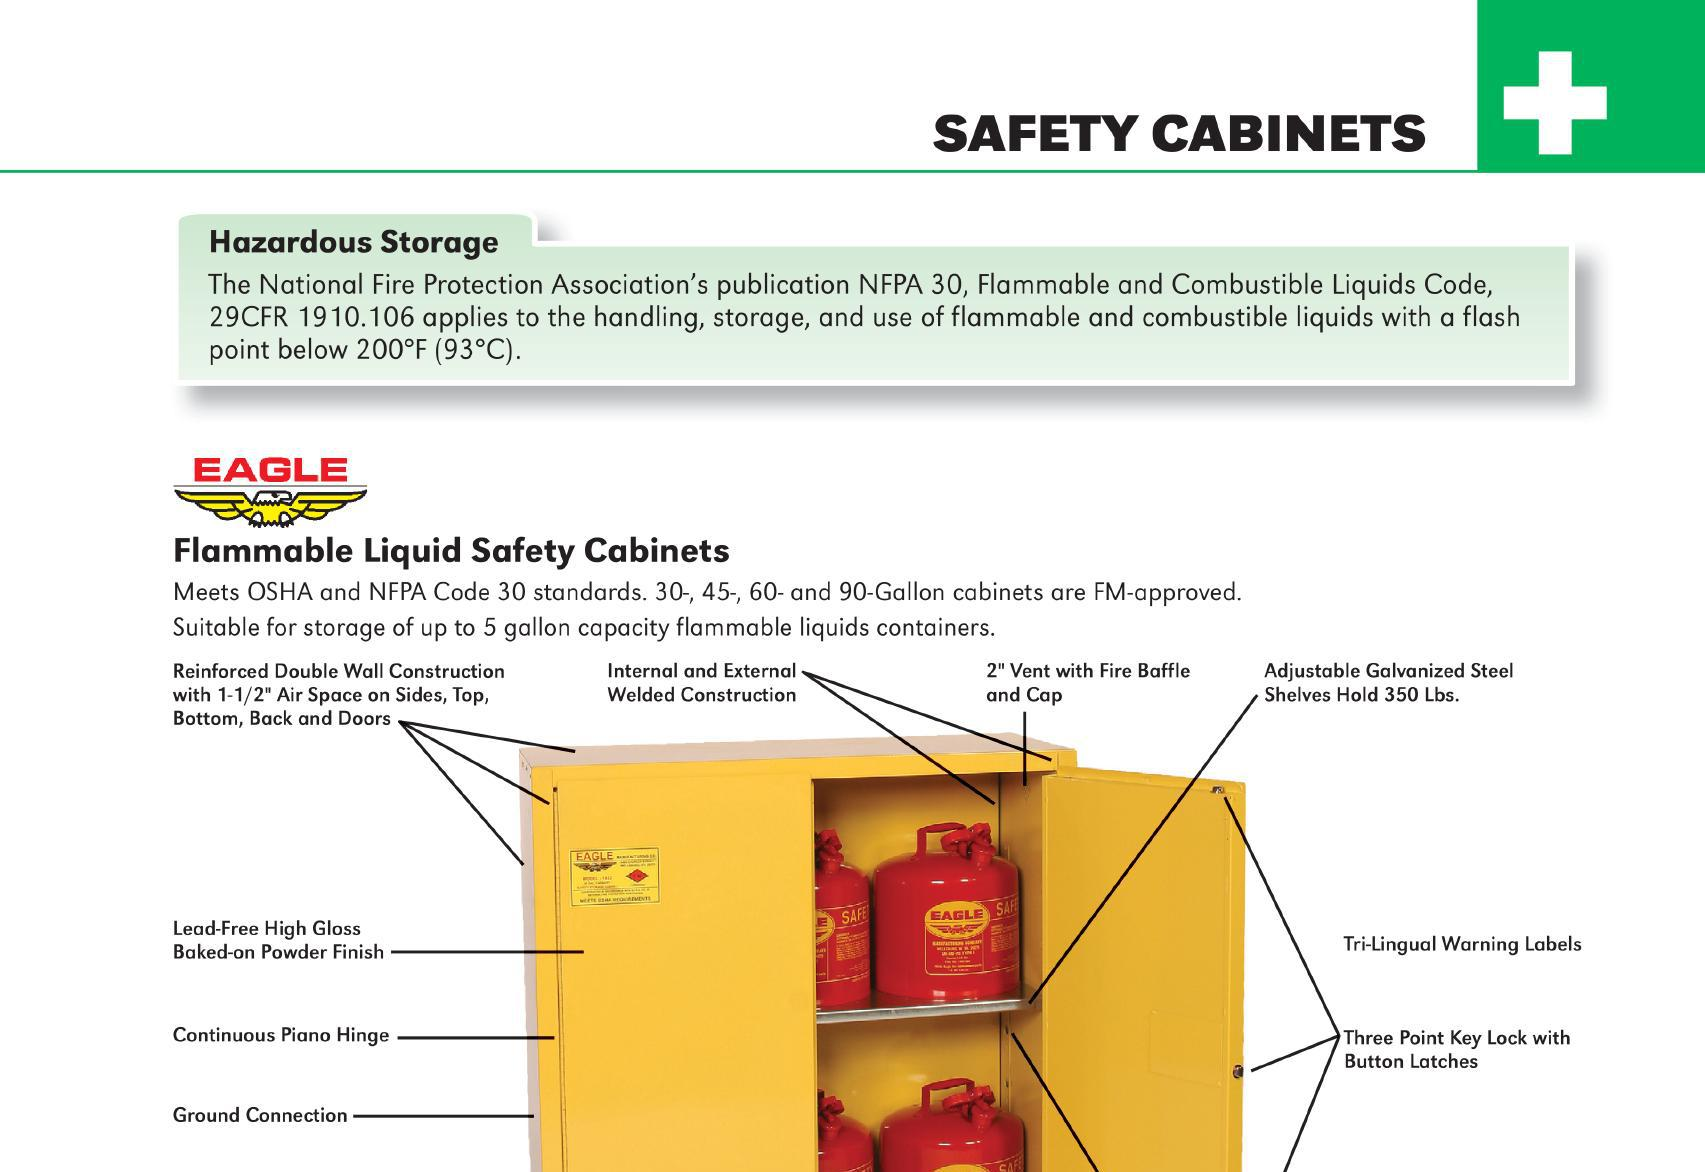 Lawson Products Catalog US 2015 Page 1887 - Safety Products